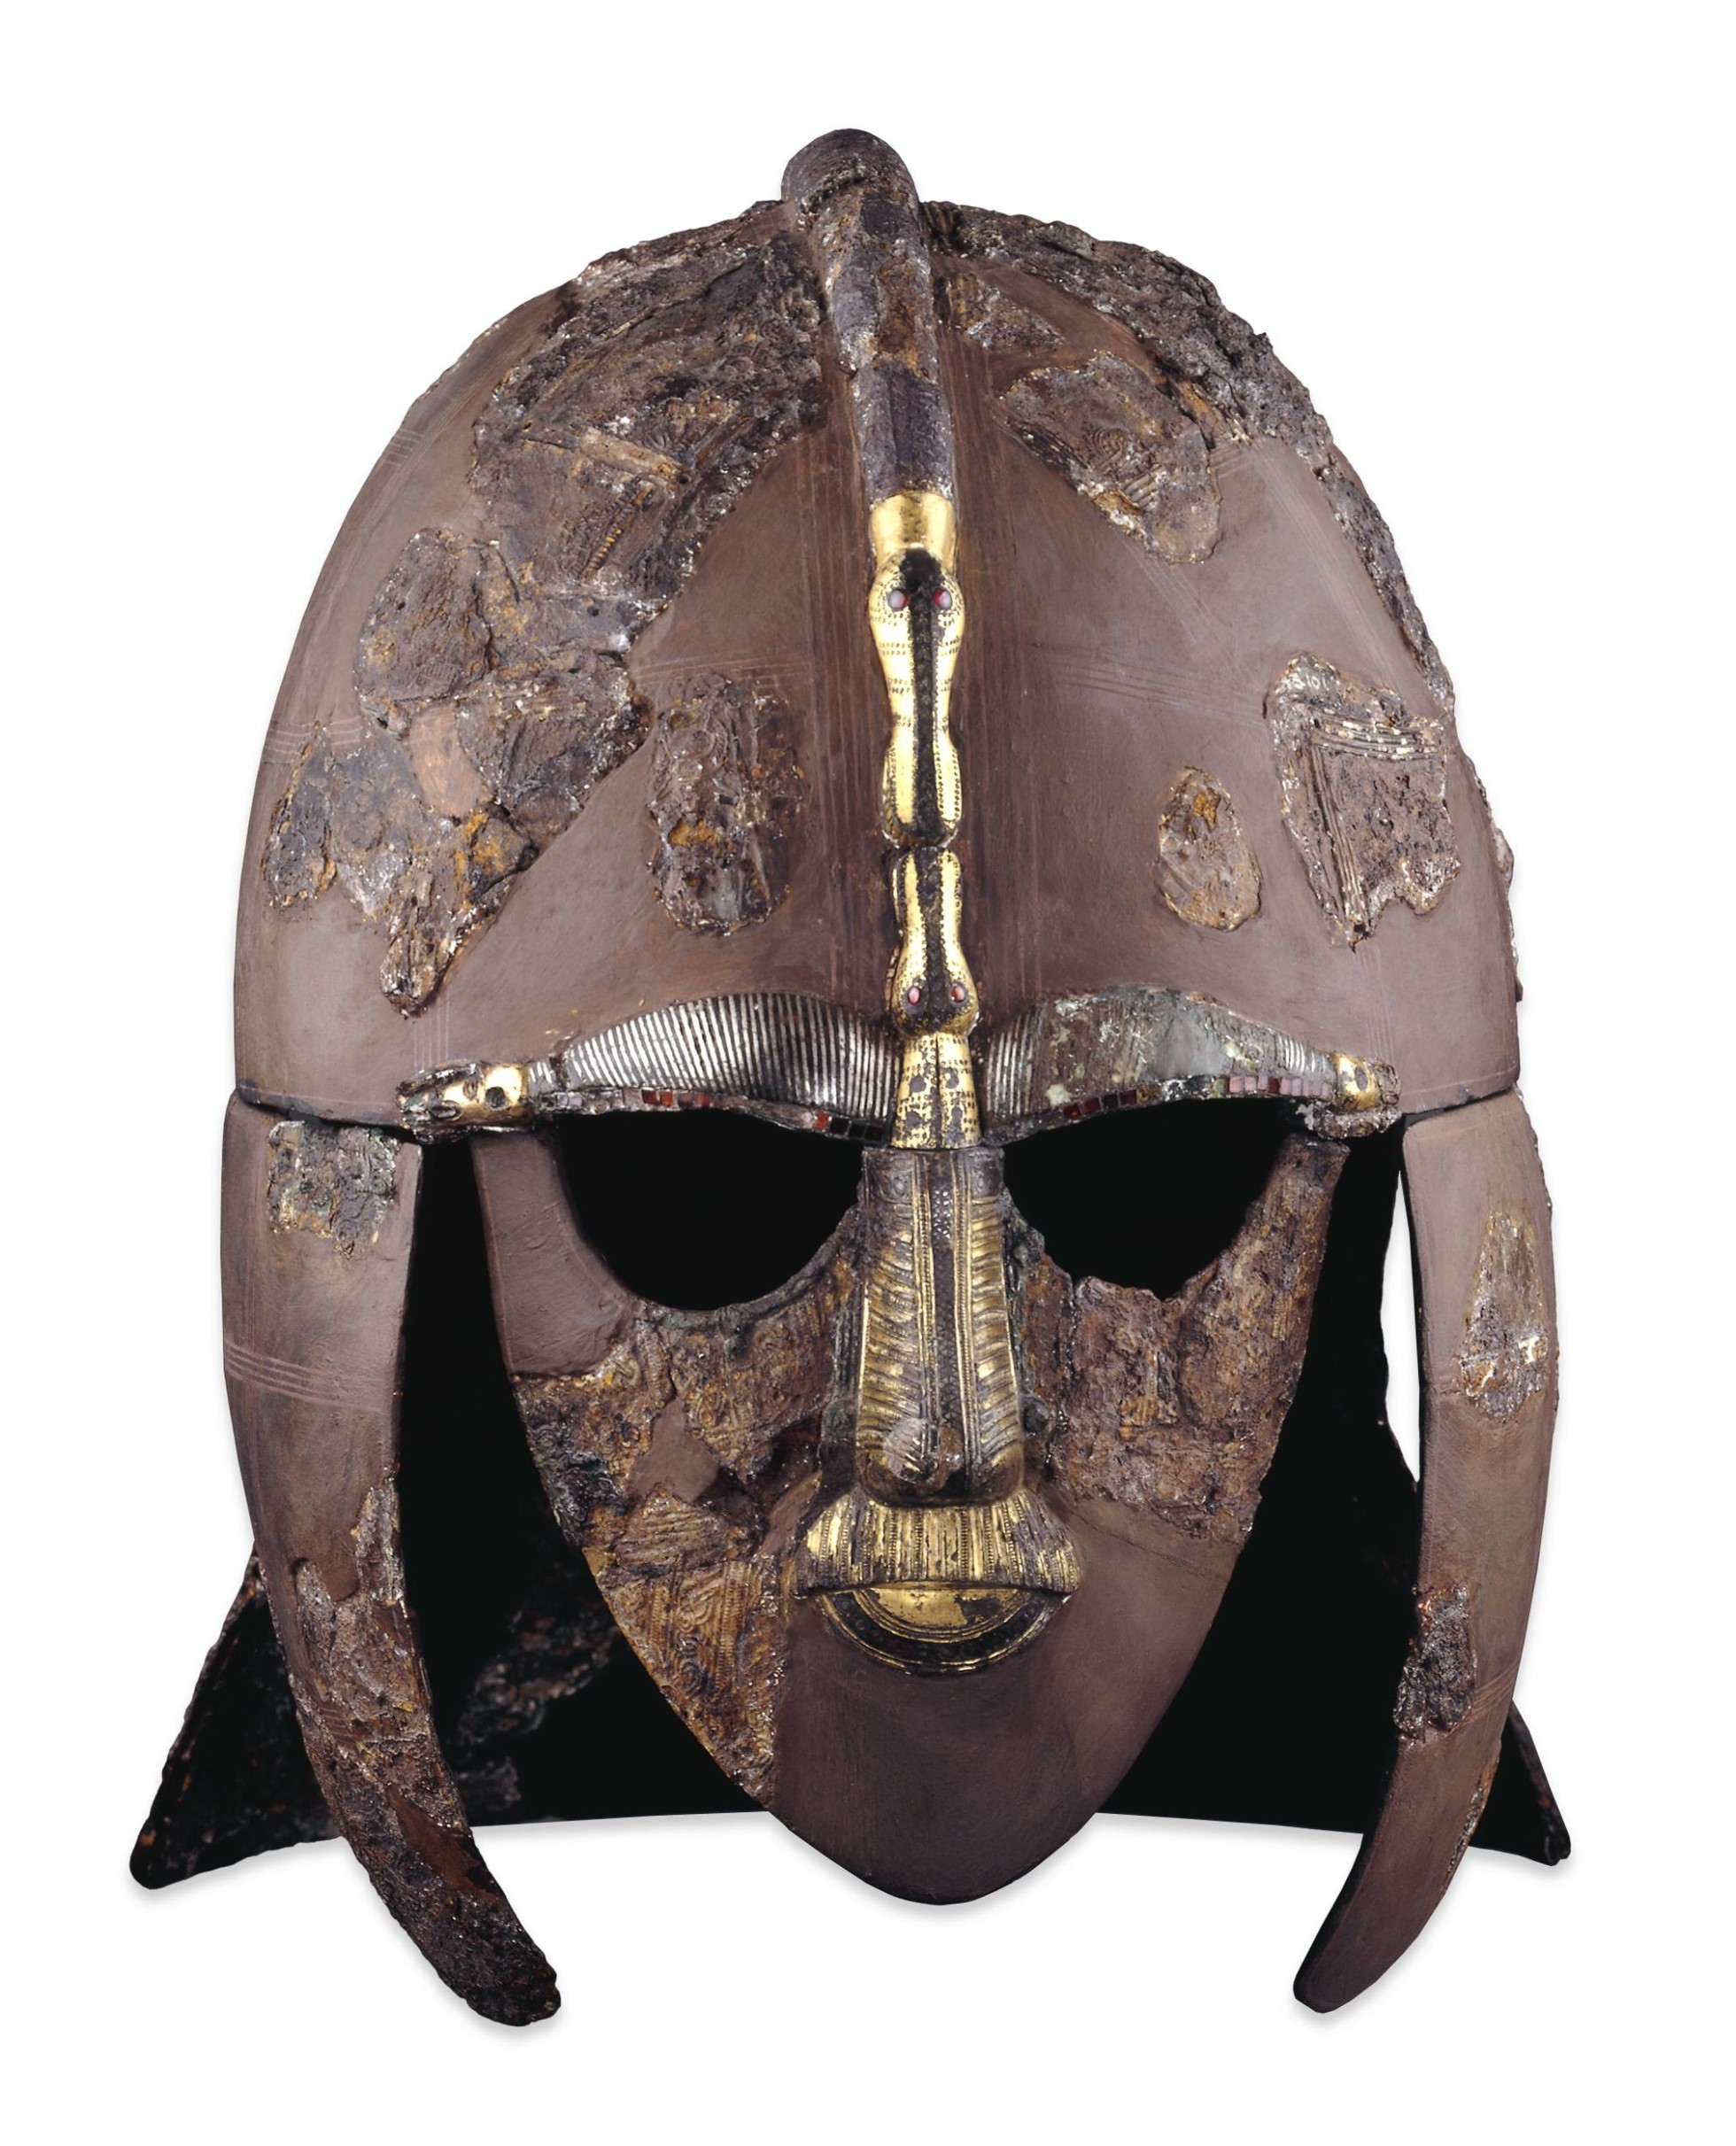 Iron and tinned copper alloy helmet, consisting of many pieces of iron, forming cap, cheek-pieces, mask and neck-guard.